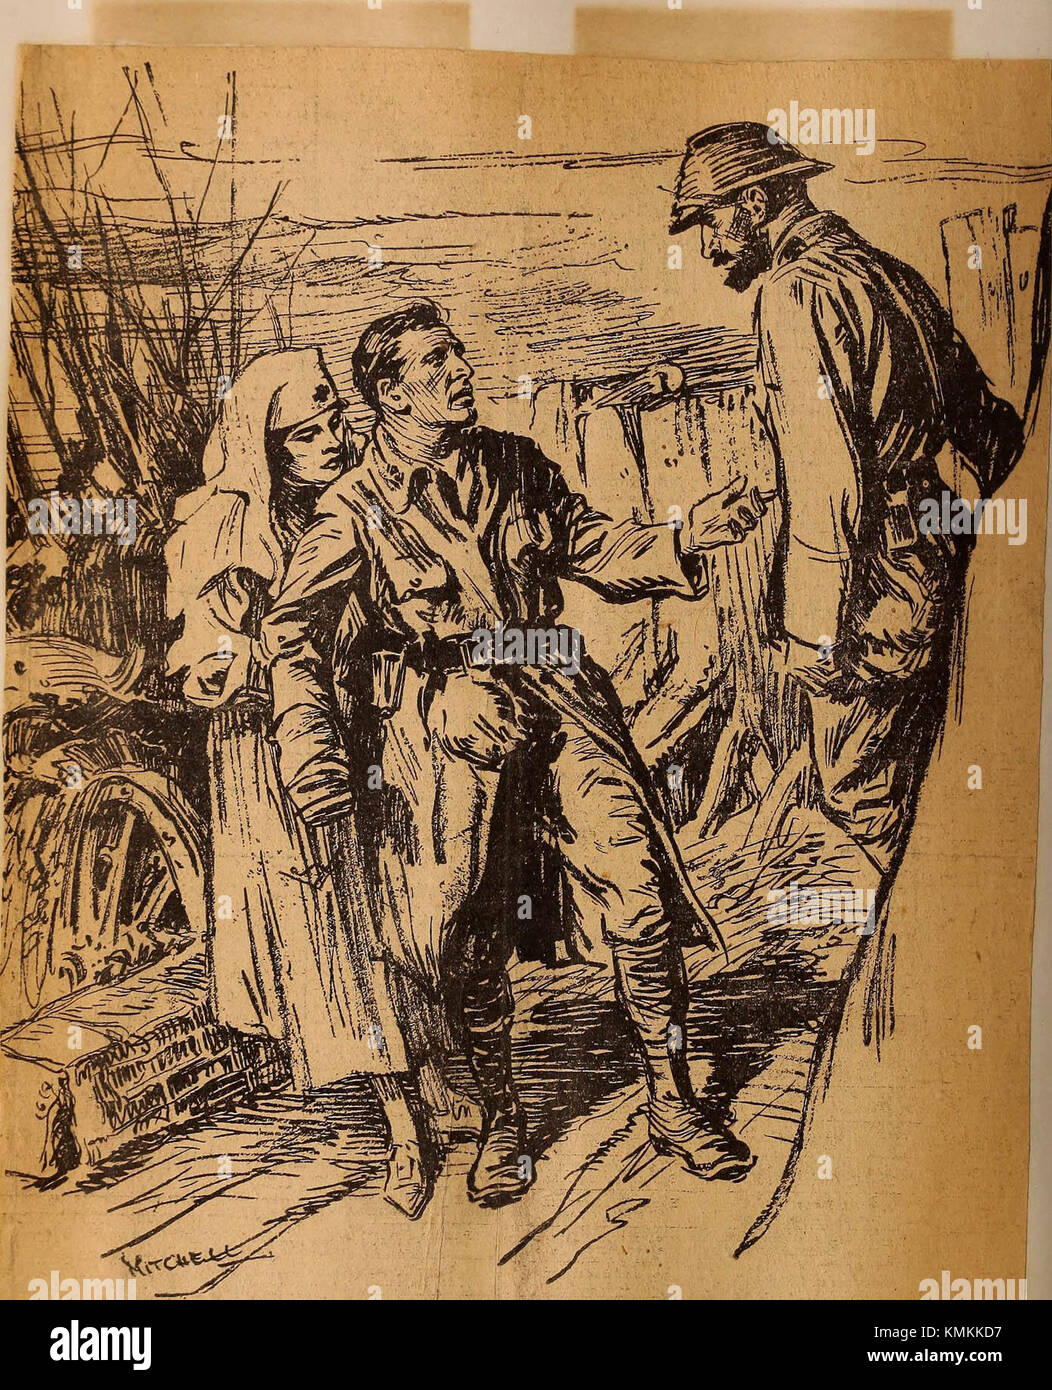 'Perkins School for the Blind Bound Clippings: World War Blind, 1917' (1917) - Stock Image